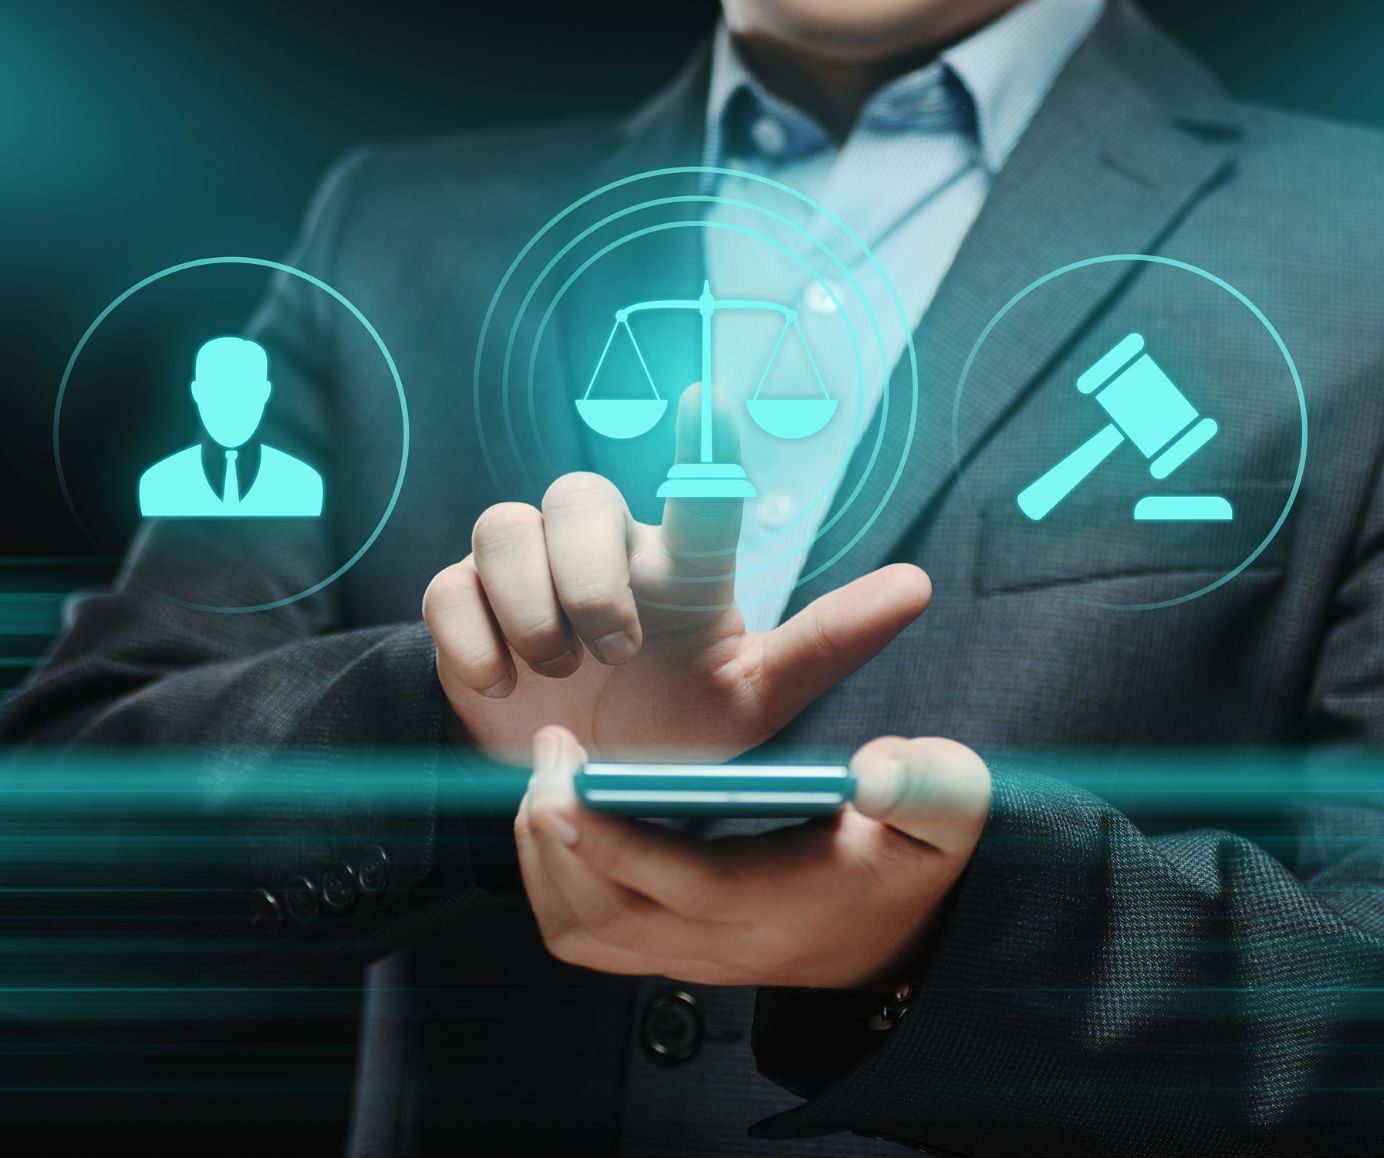 Reality check — Smart contracts are still going to need smart lawyers